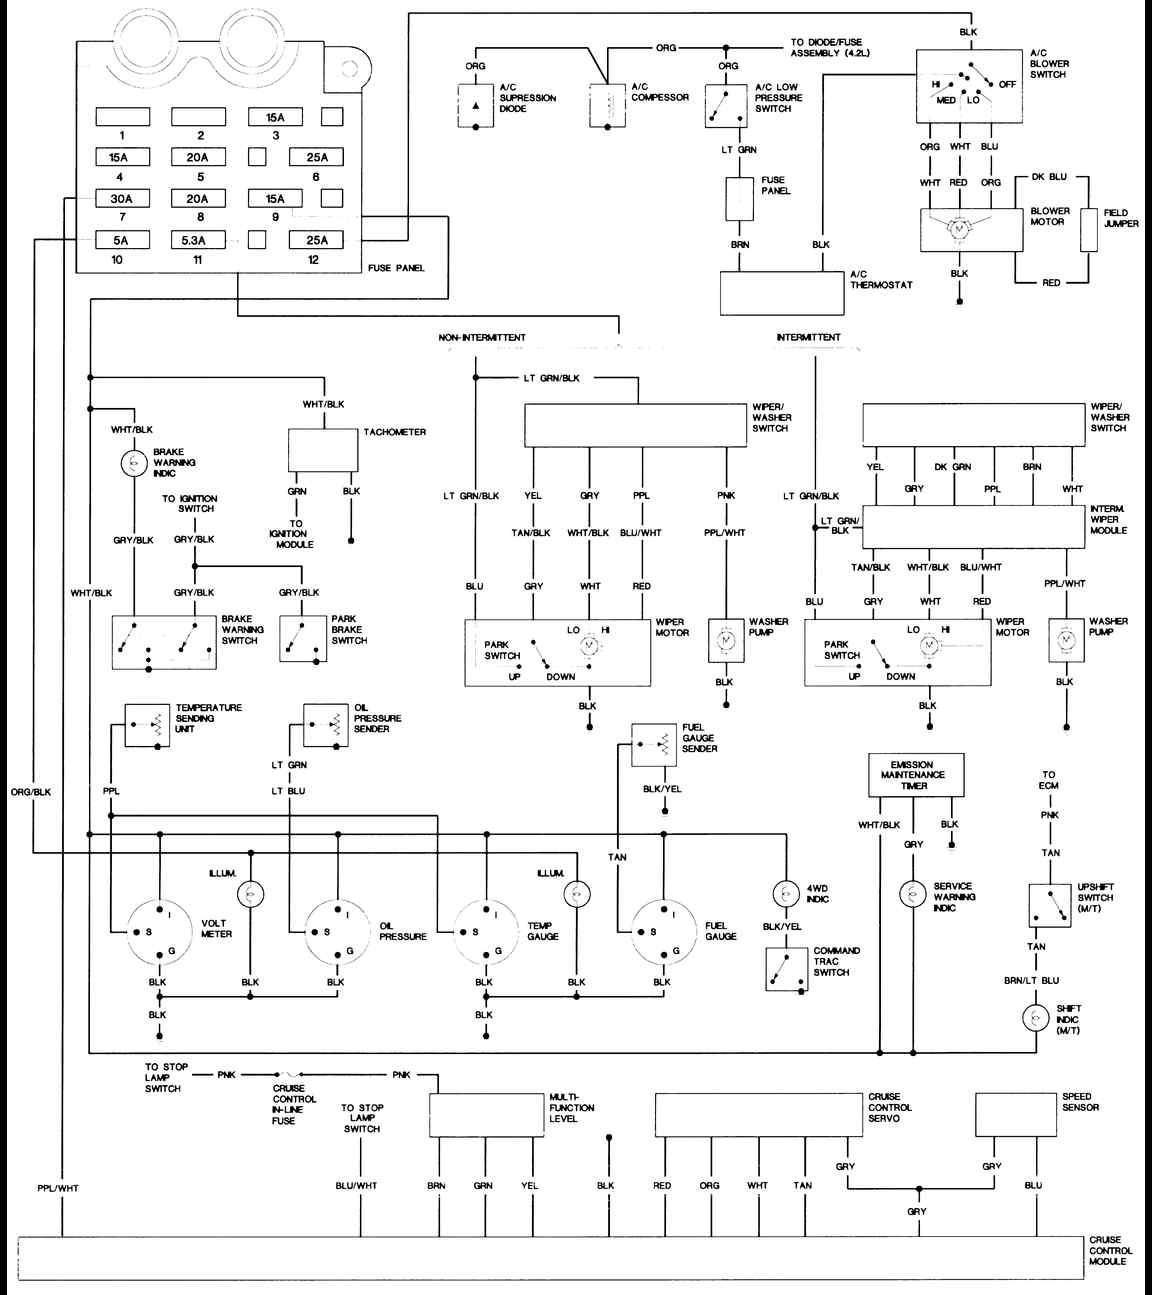 [DIAGRAM_3NM]  MW_3847] 94 Jeep Grand Cherokee Wiring Diagram Need Wiring Diagram For 94  Gc Wiring Diagram | 94 Jeep Cherokee Fuel Pump Wiring Diagram |  | Ittab Unpr Faun Hapolo Mohammedshrine Librar Wiring 101